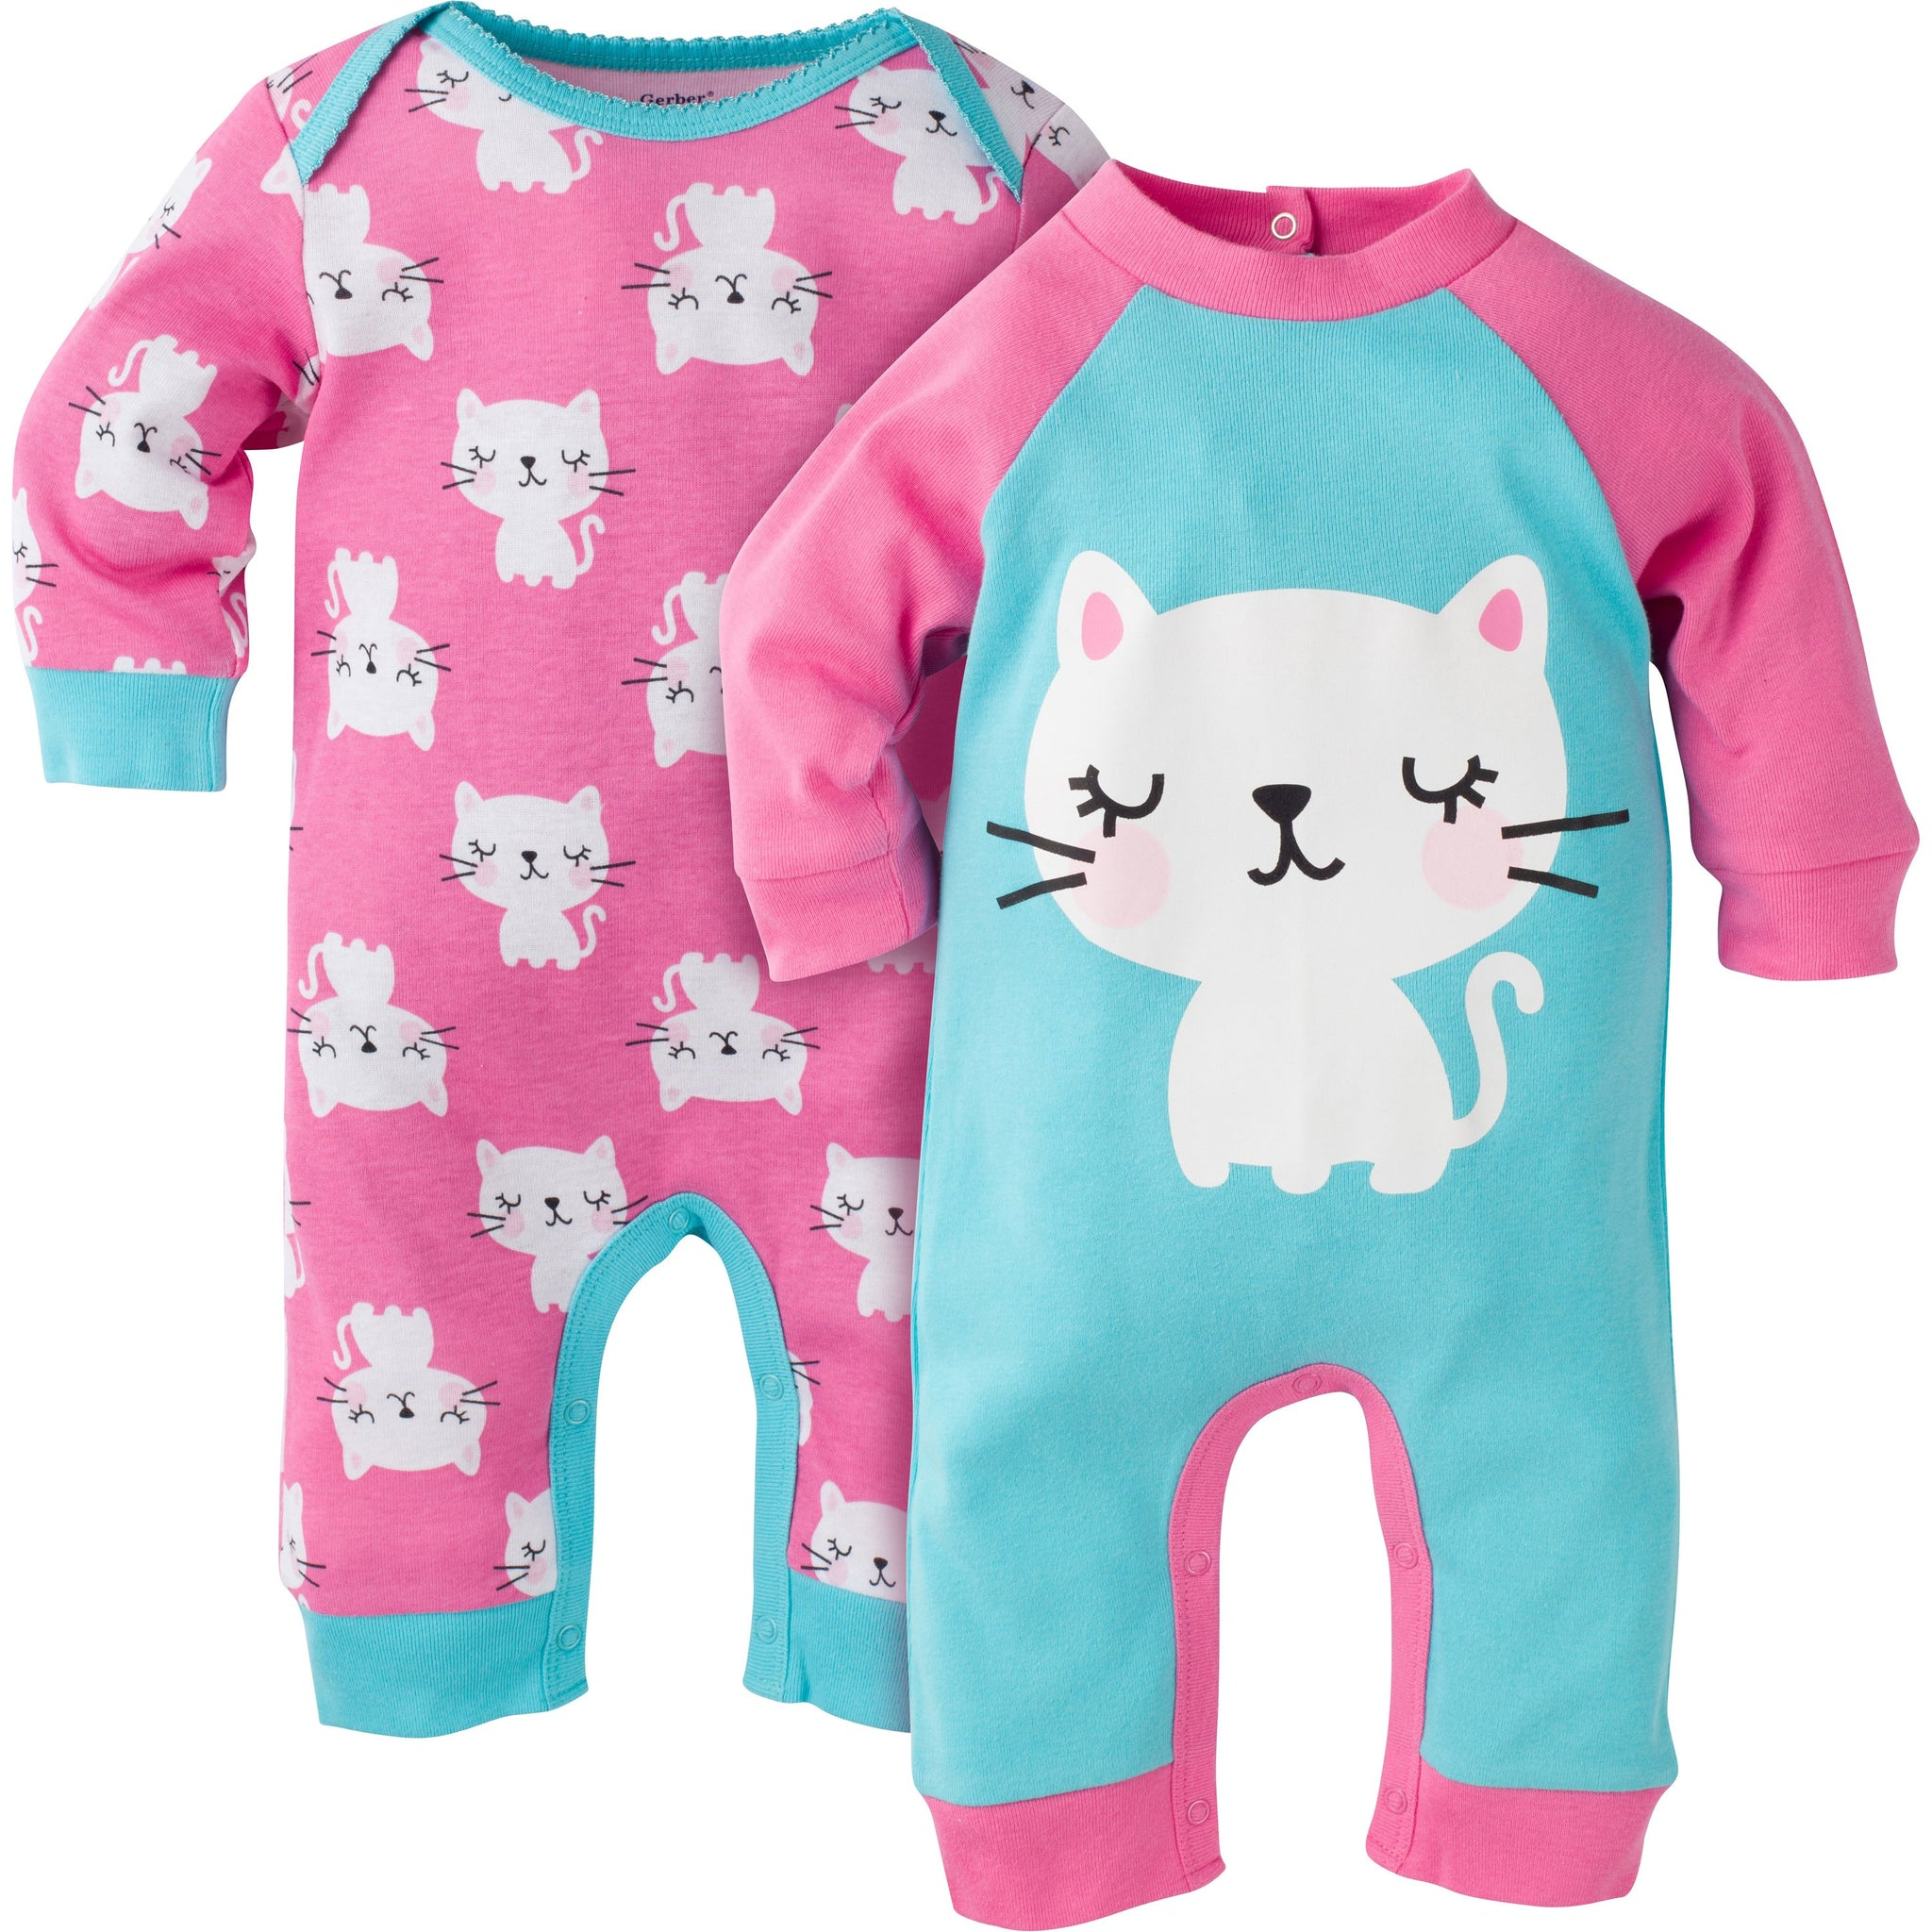 Gerber Baby Girls' 2-Pack Coverall Set, kitty